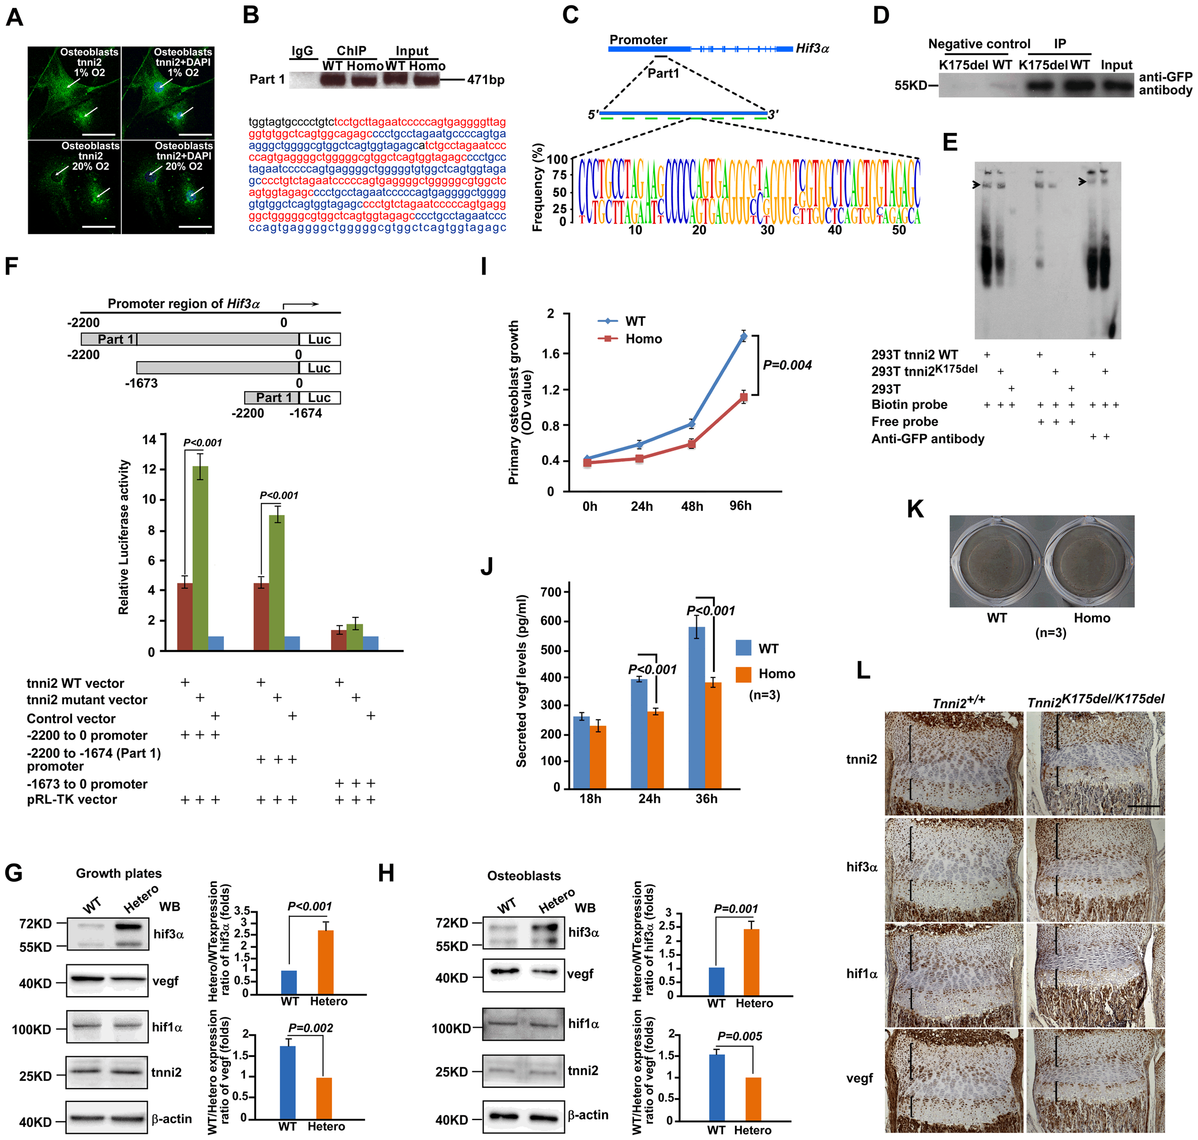 Mutant tnni2 protein increased hif3a and reduced vegf expression.